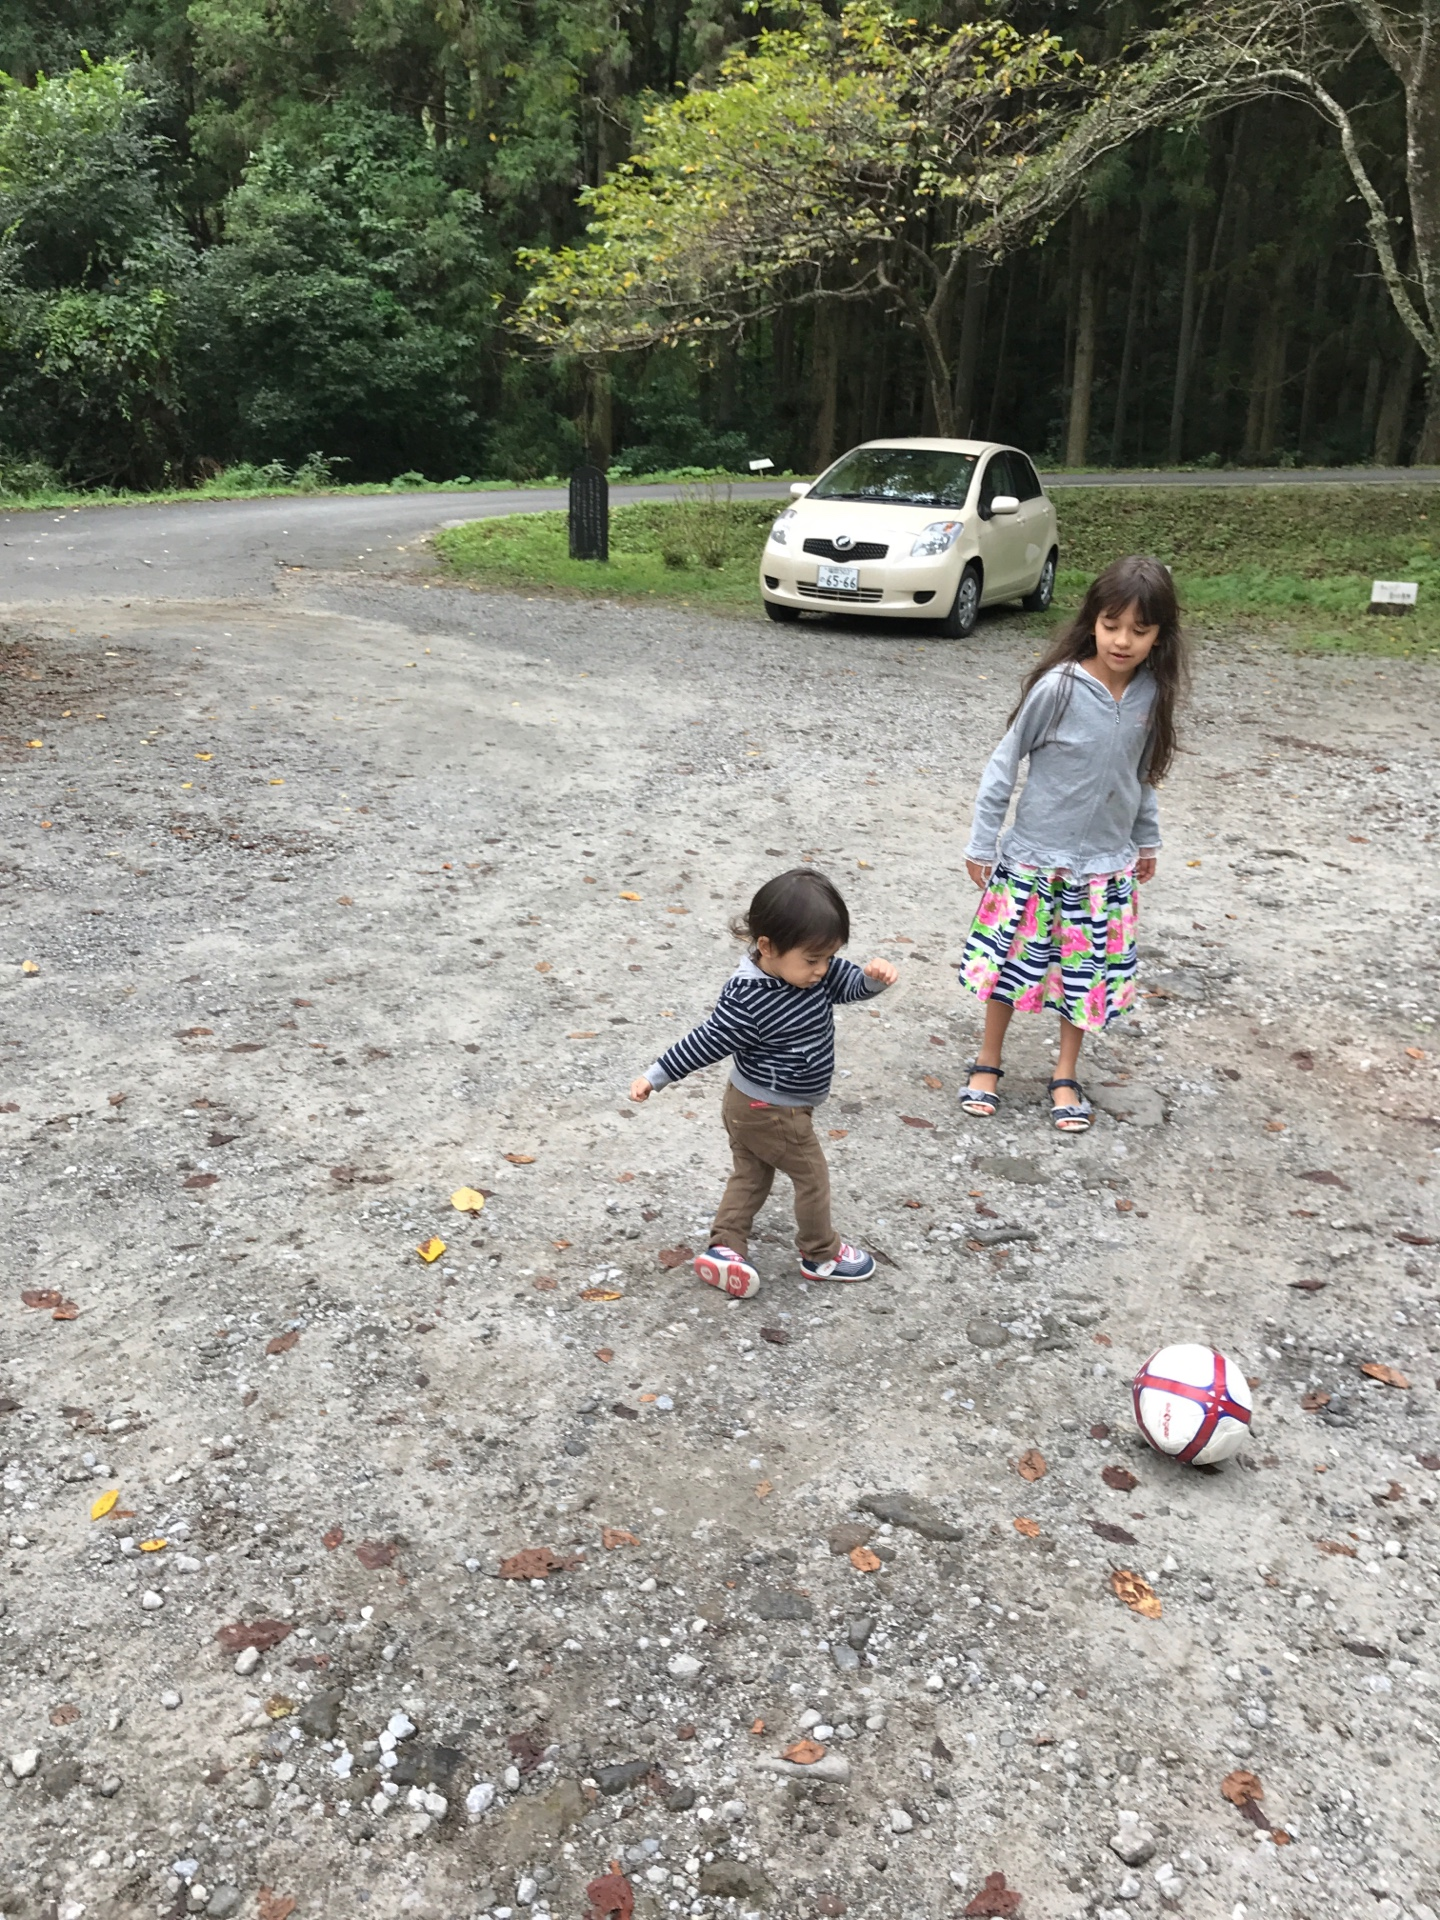 Alexander playing football